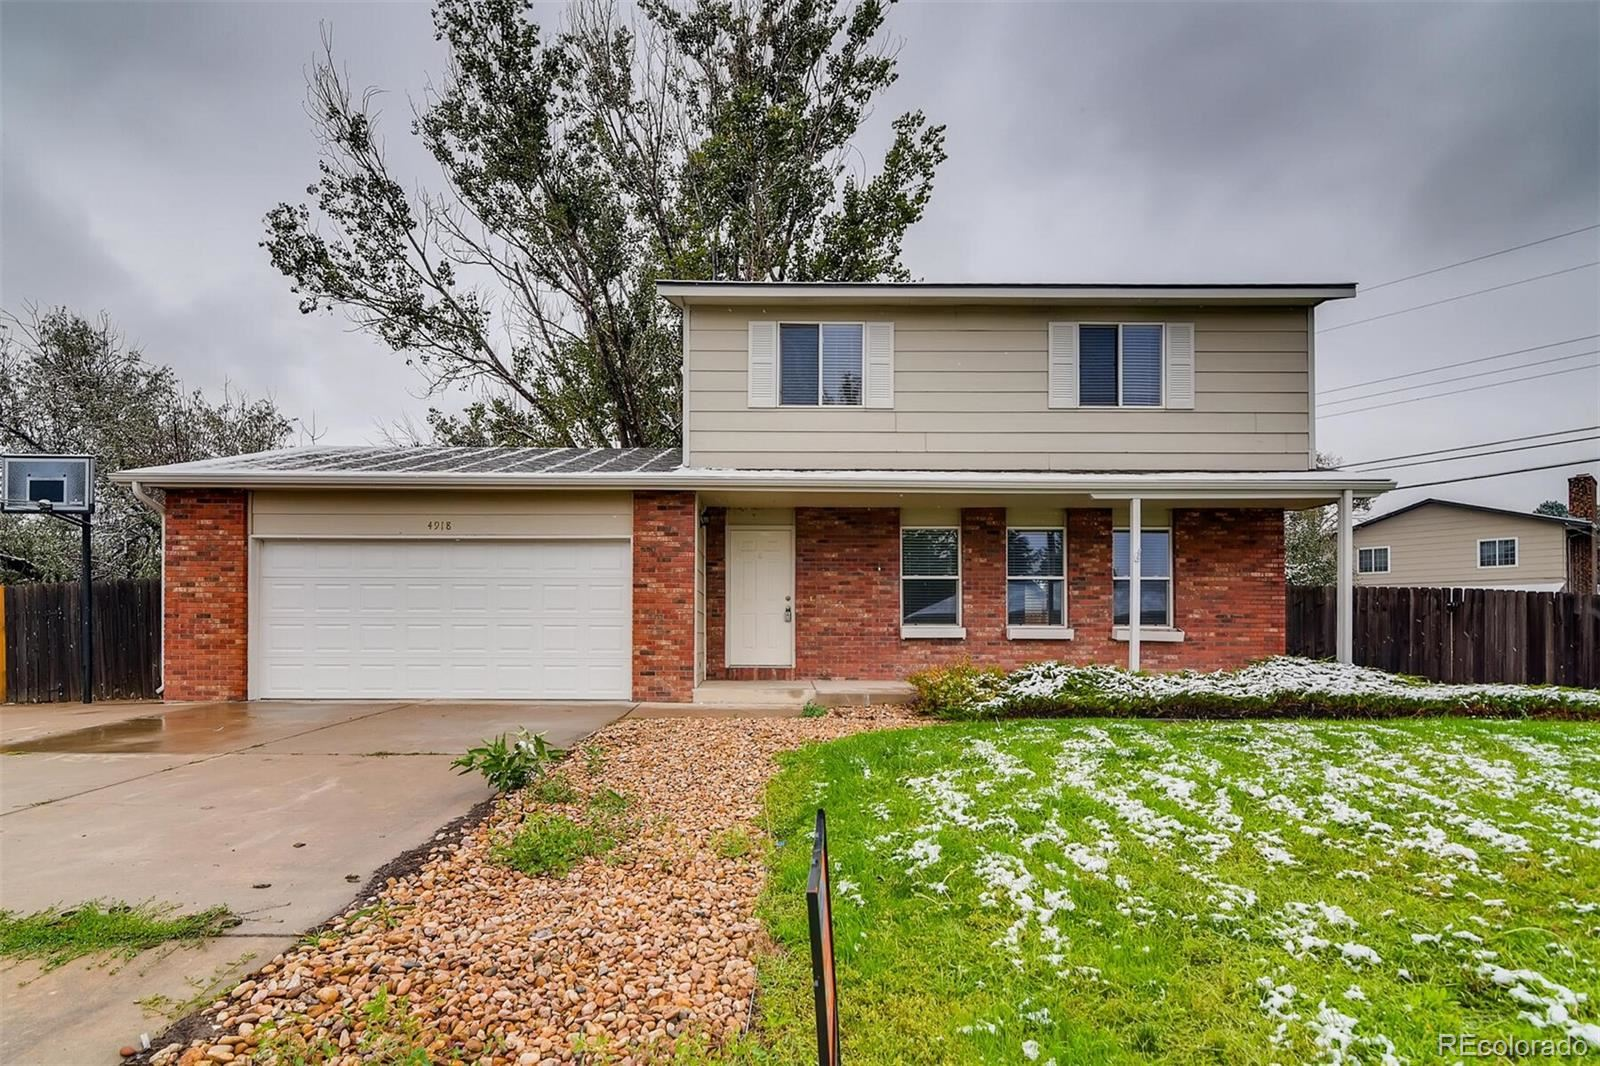 4918 23rd Street Road, Greeley, CO 80634 - #: 2829423